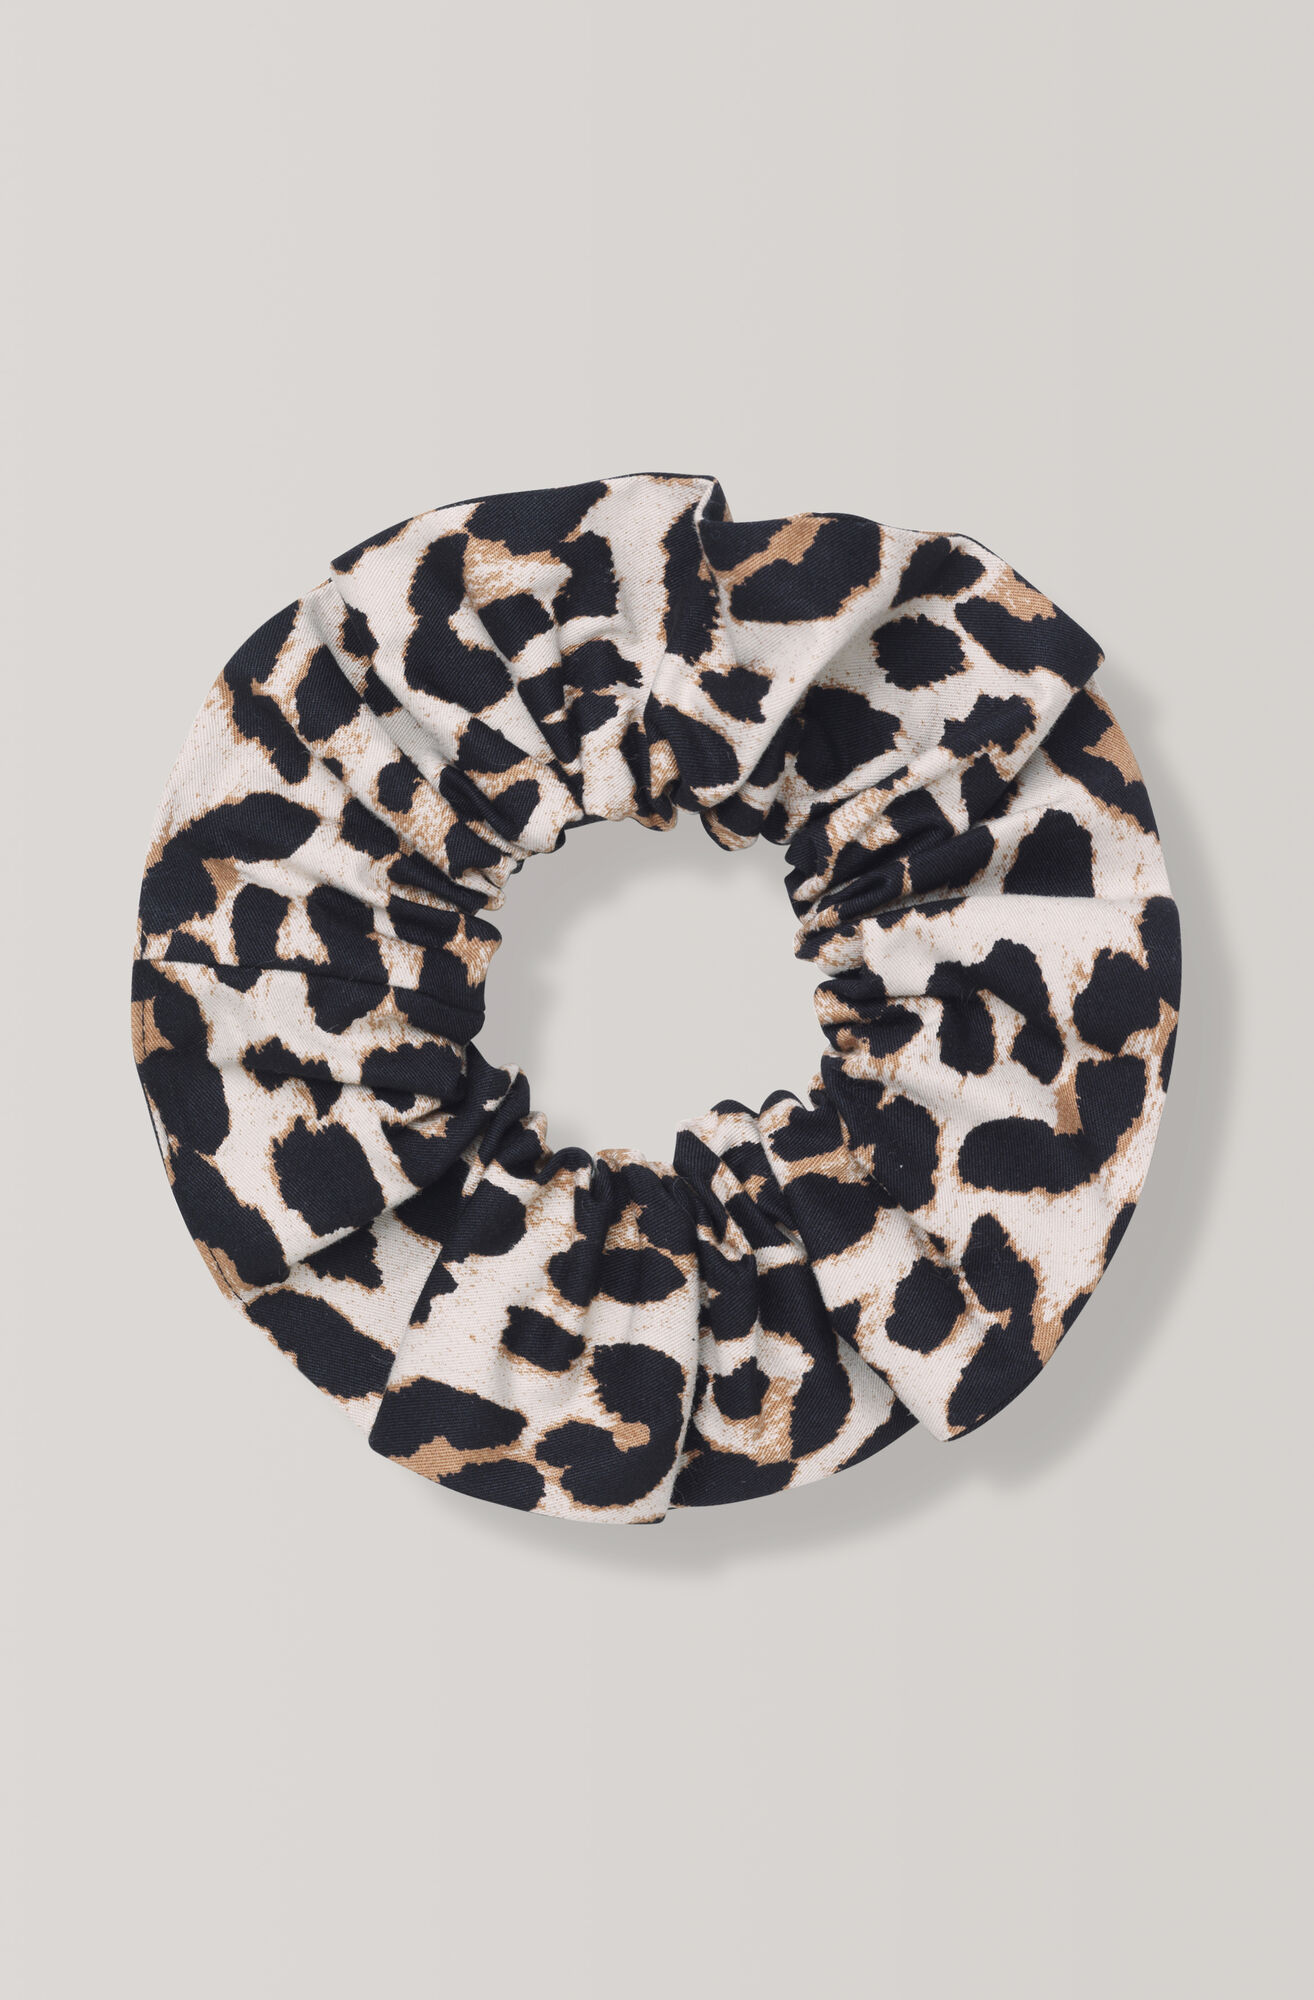 Fabre Cotton Scrunchie, Leopard, hi-res